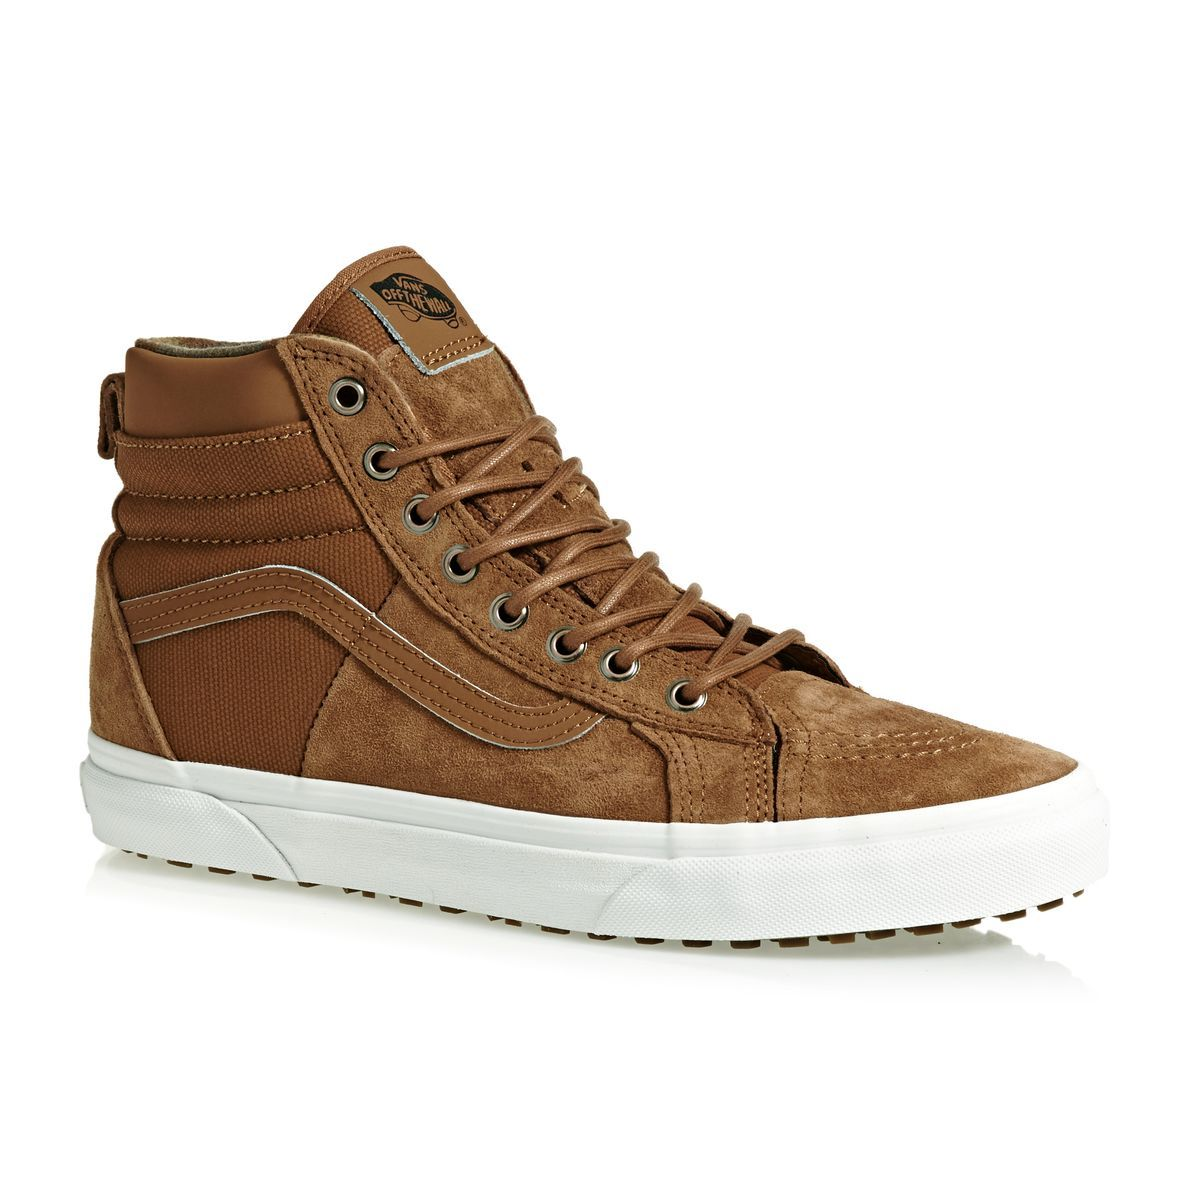 Buy Vans Sk8-Hi 46 MTE DX Shoes Glazed Ginger/Flannel with great prices